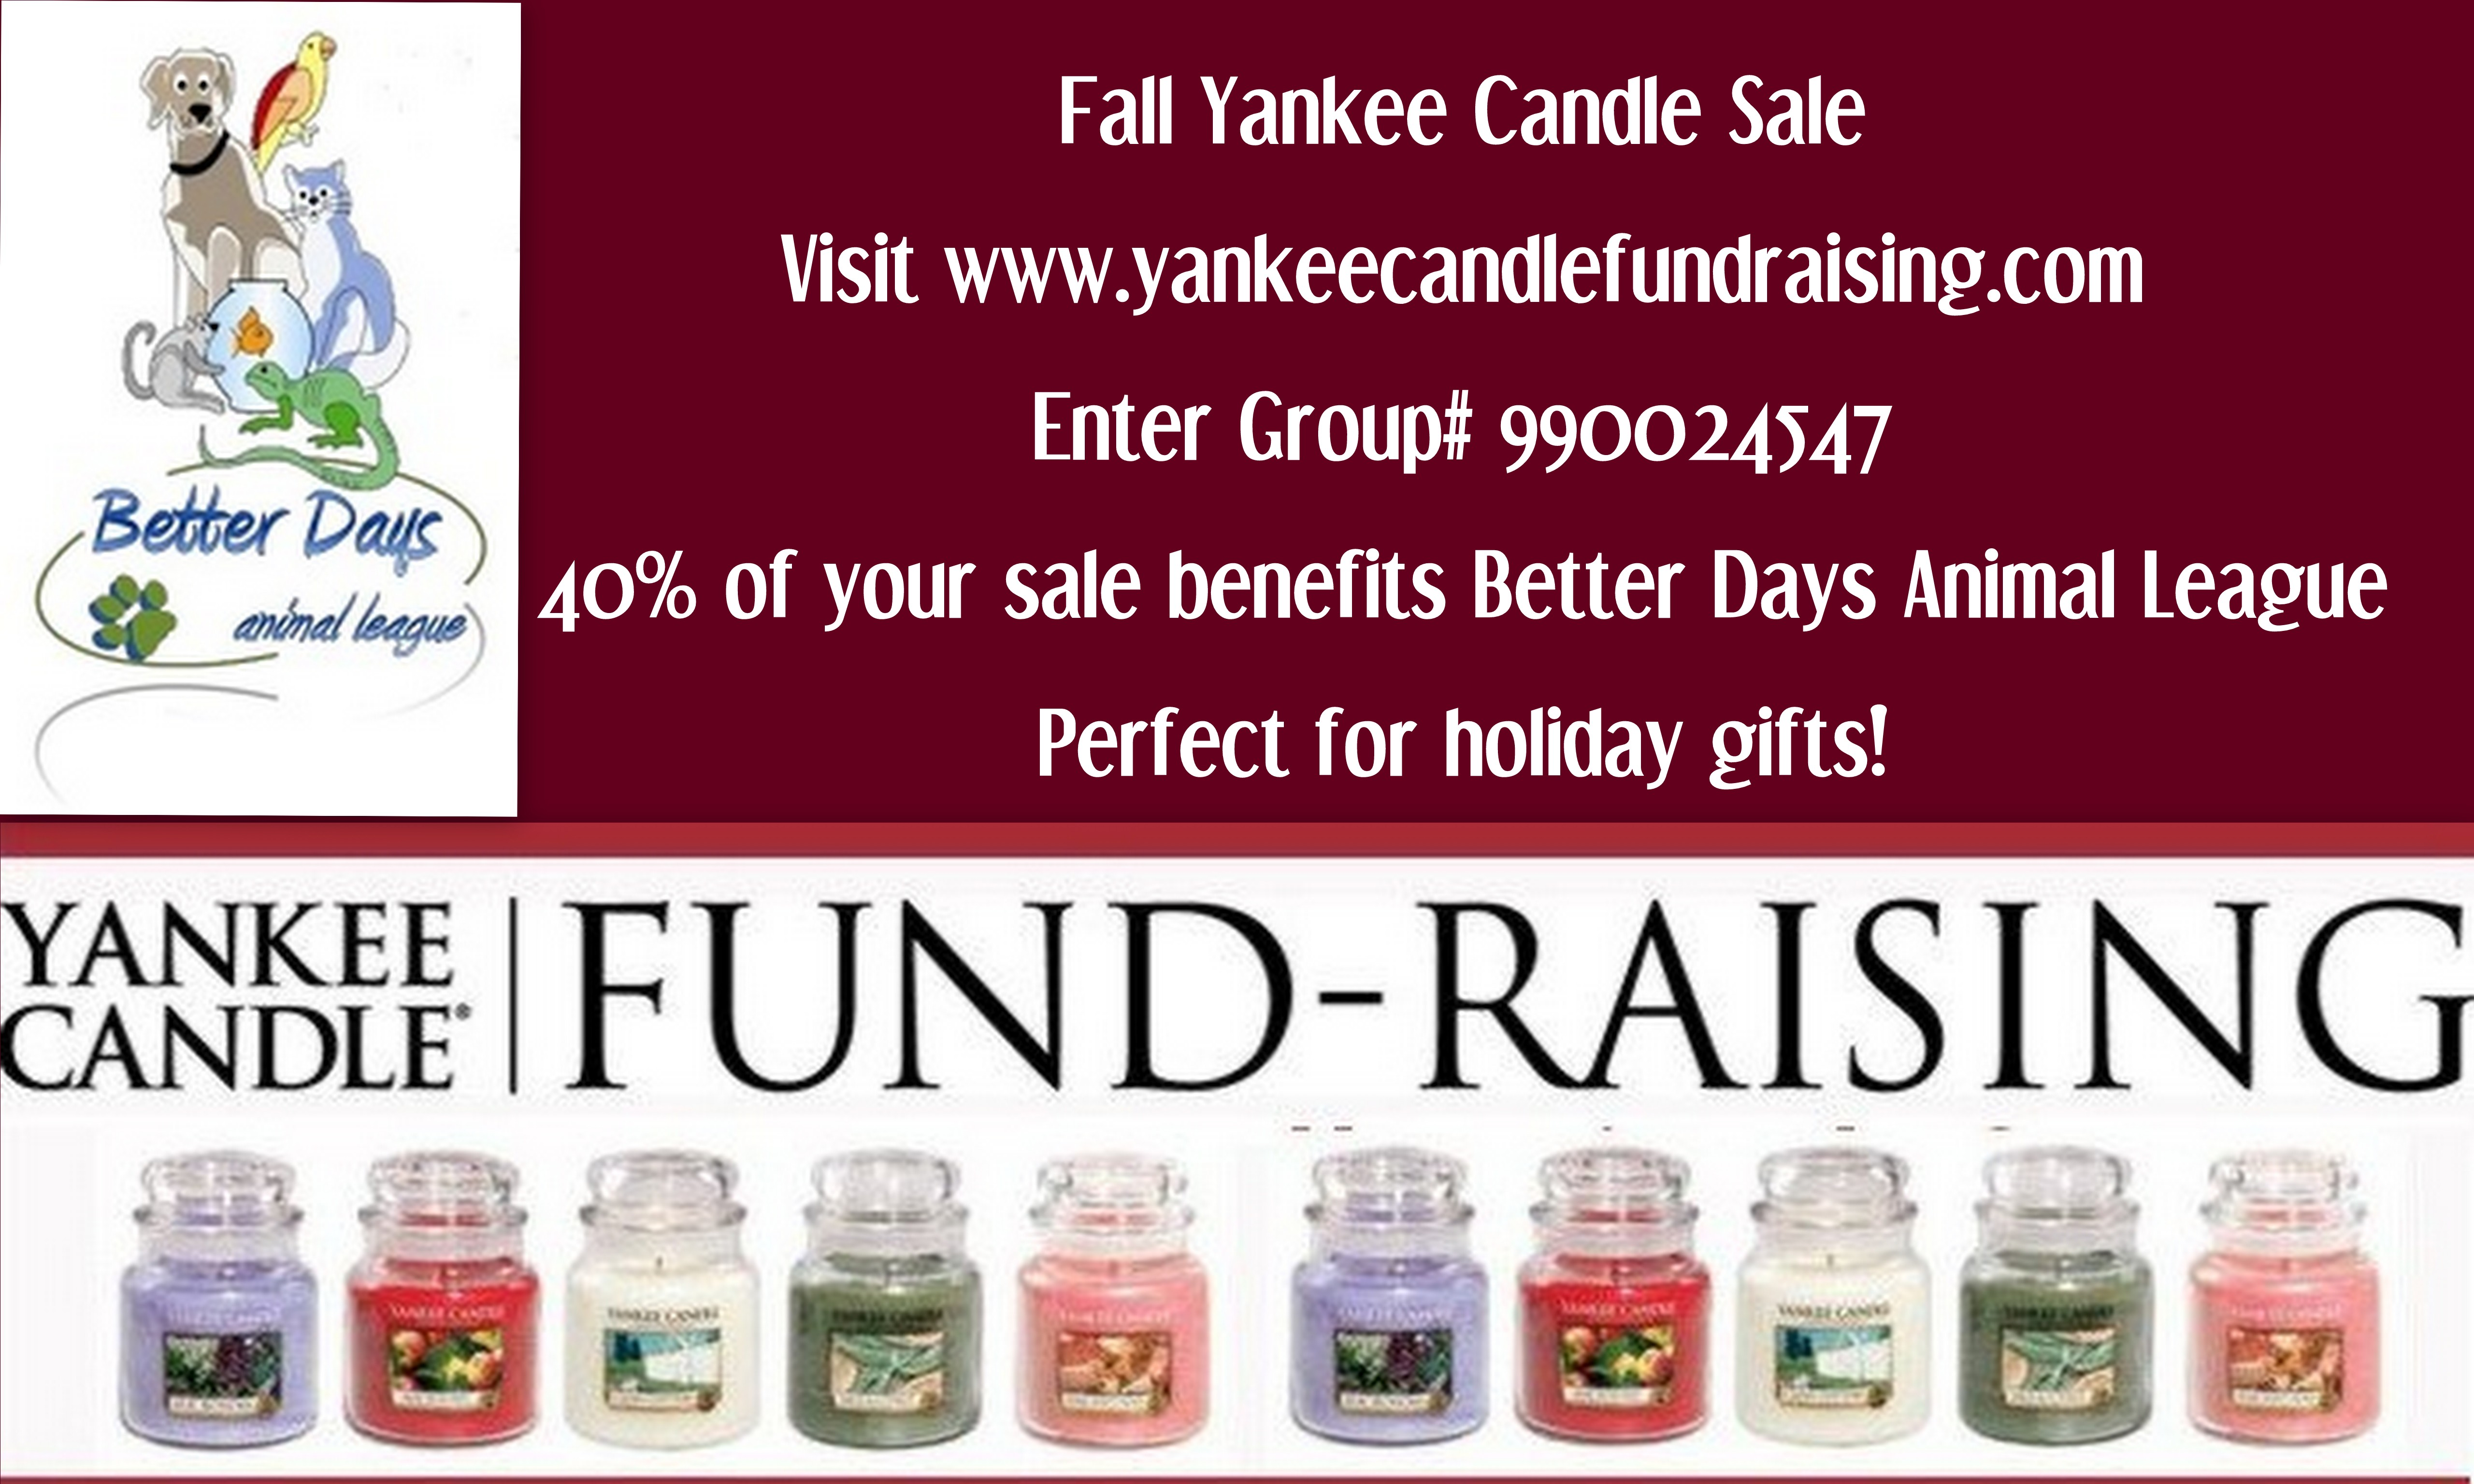 Fall Yankee Candle Sale Open Now!